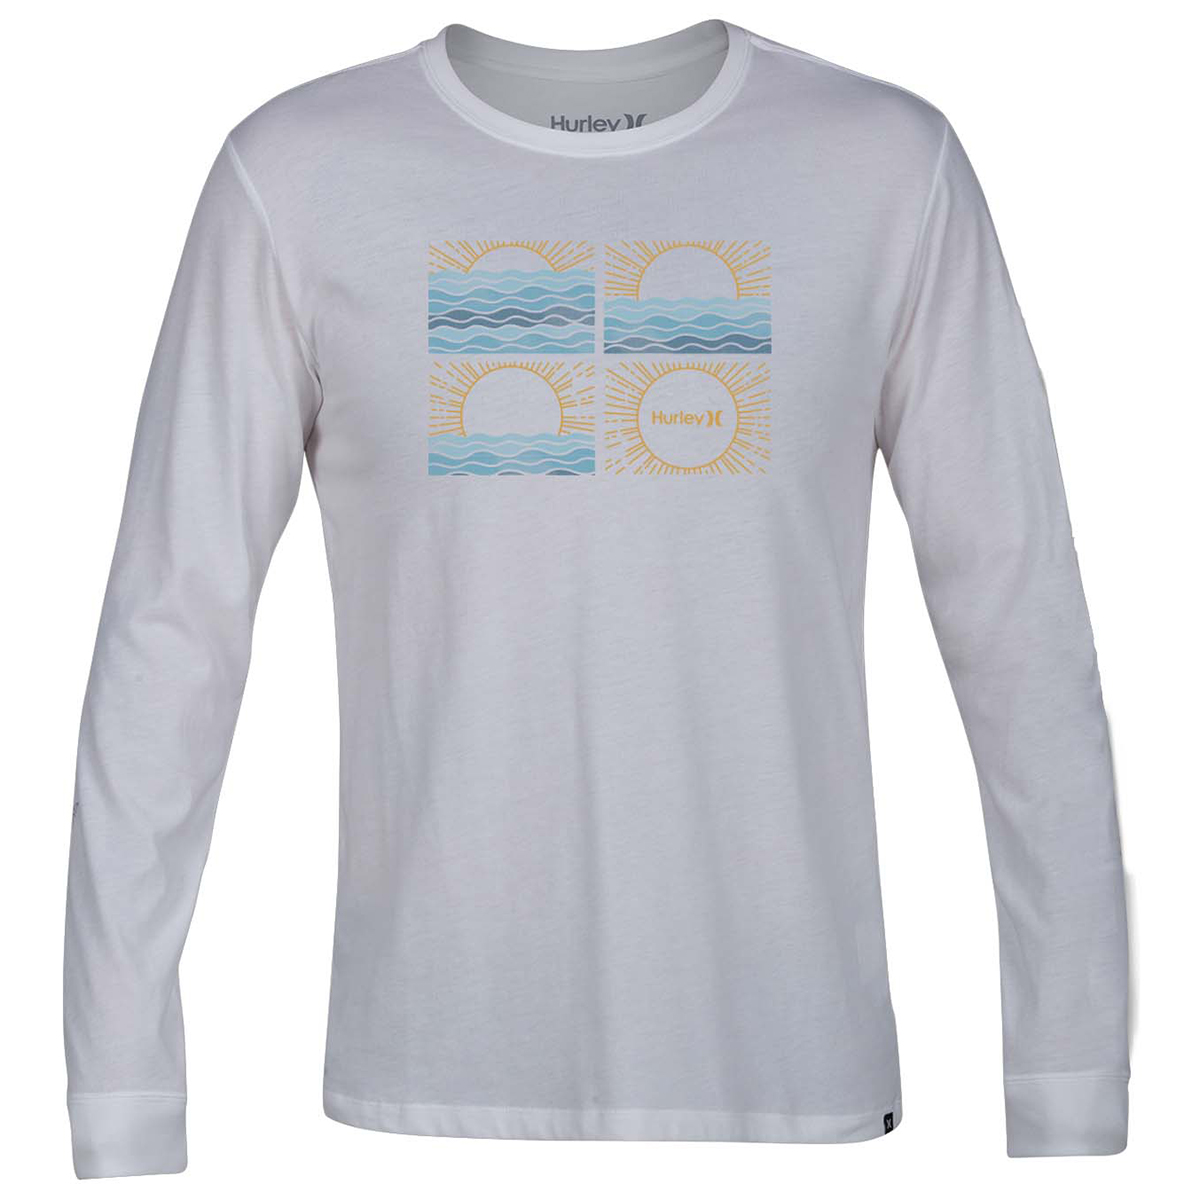 Hurley Guys' Sunrise Graphic Long-Sleeve Tee - White, L